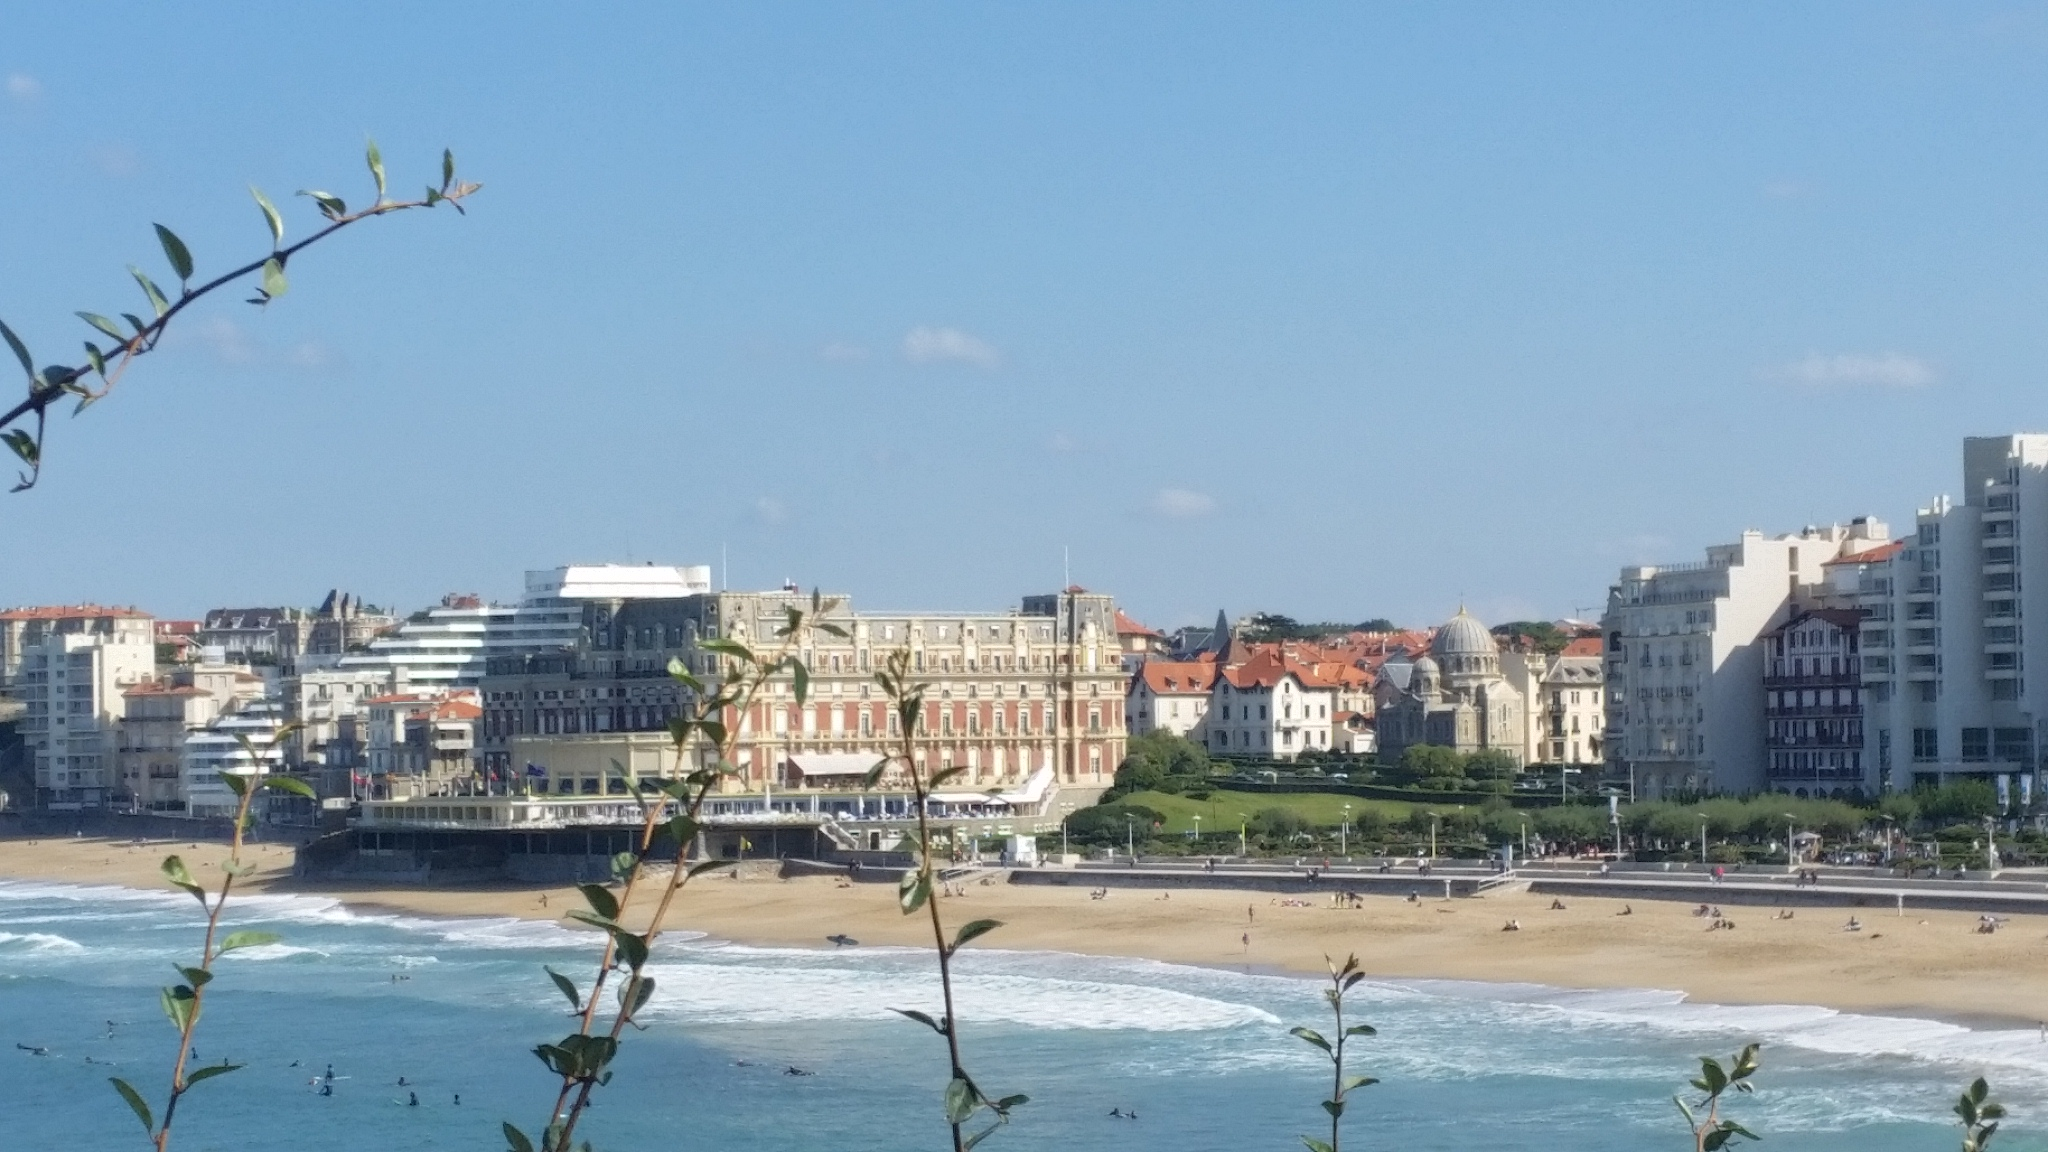 Elegant resort of Biarritz